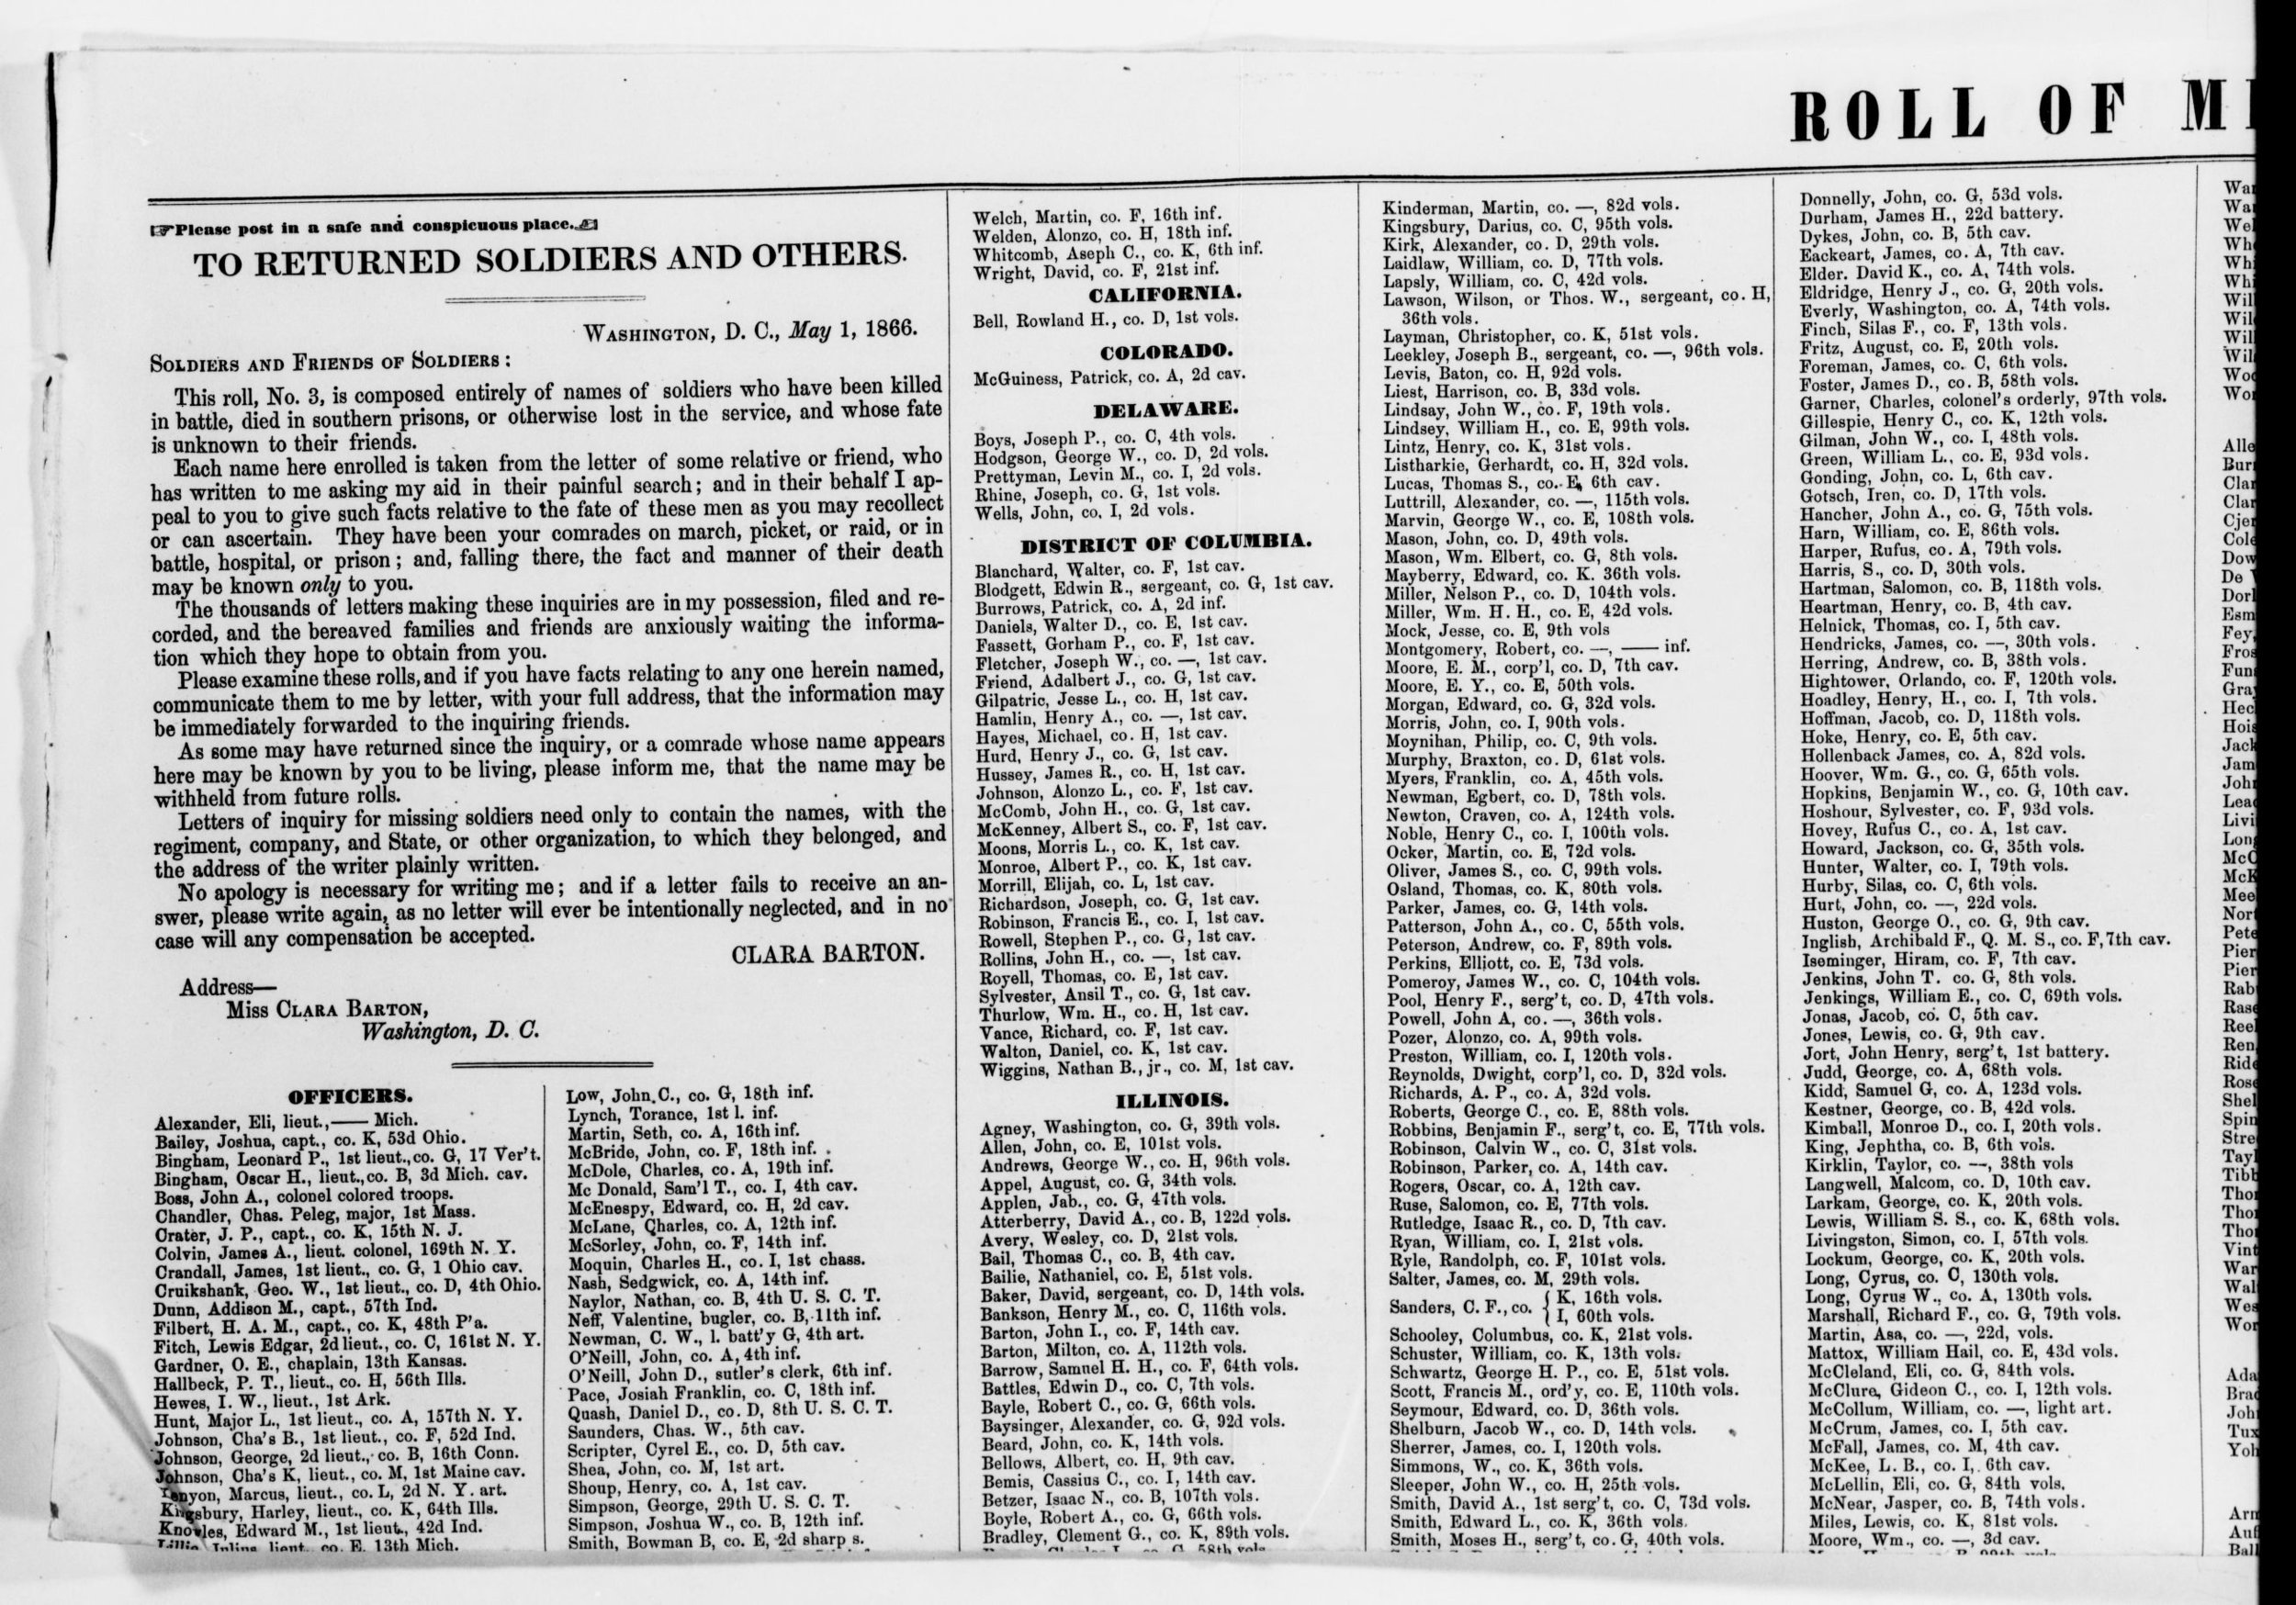 """The Office of Correspondence with the Friends of the Missing Men of the U.S. Army, AKA Clara and Co., published lists of names in national papers to try and get the word out to families about what had happened to their loved ones. It was also a good way to request information from readers, which helped Clara find even more. Can you IMAGINE publishing your personal email address in a newspaper, telling people to just write you if they have anything to say? Chaos. You can see in the language, though, how much she wanted to encourage people: """"No apology is necessary for writing me; and if a letter fails to receive an answer, please write again..."""" She did this for years, spending all of her own money...and making none for her services. From the Clara Barton papers, courtesy of the Library of Congress."""